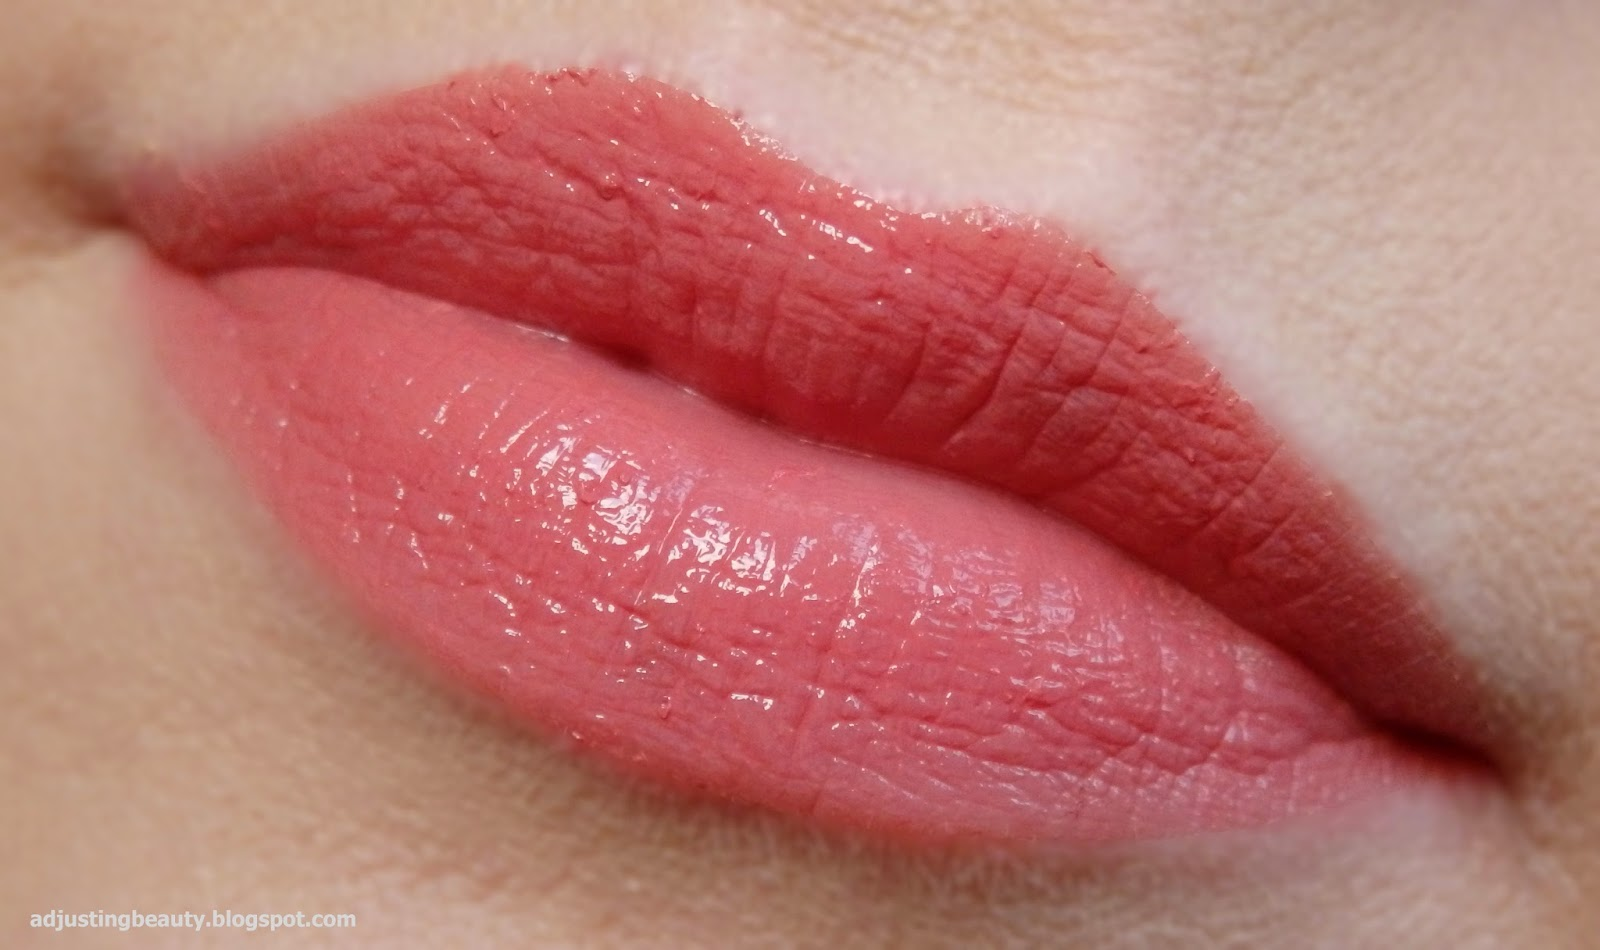 Review Avon Ultra Color Indulgence lipsticks Adjusting Beauty